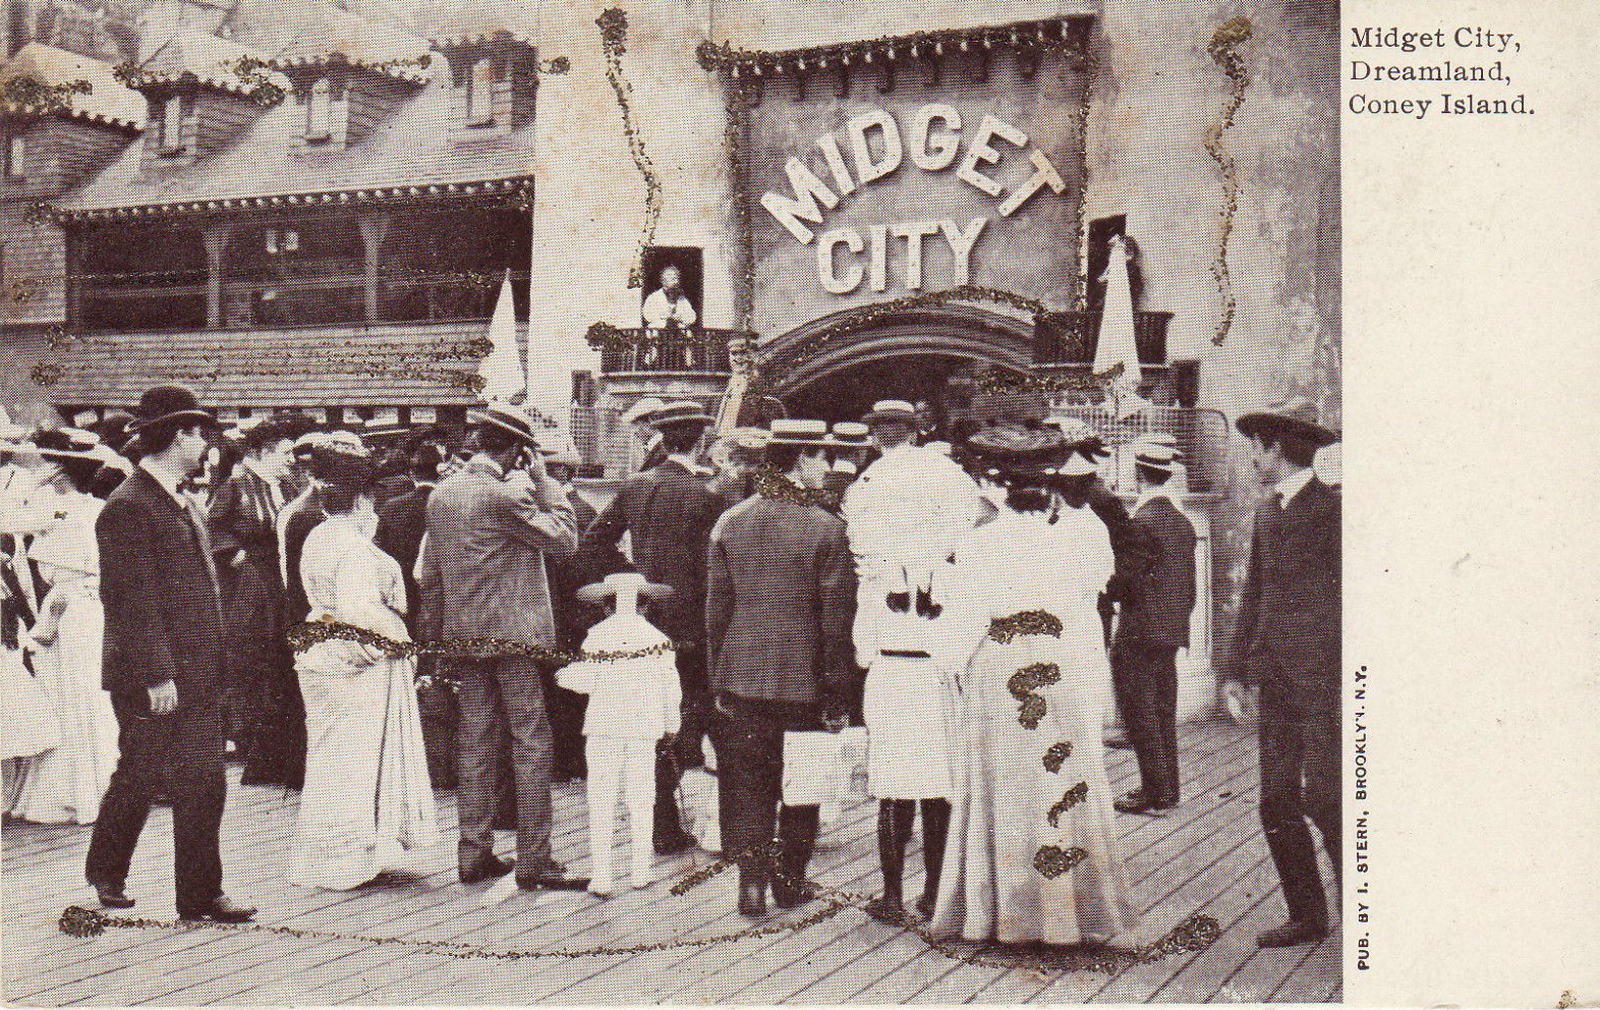 Dreamland Coney Island How New Yorker S Were Amused 100 Years Ago Part 2